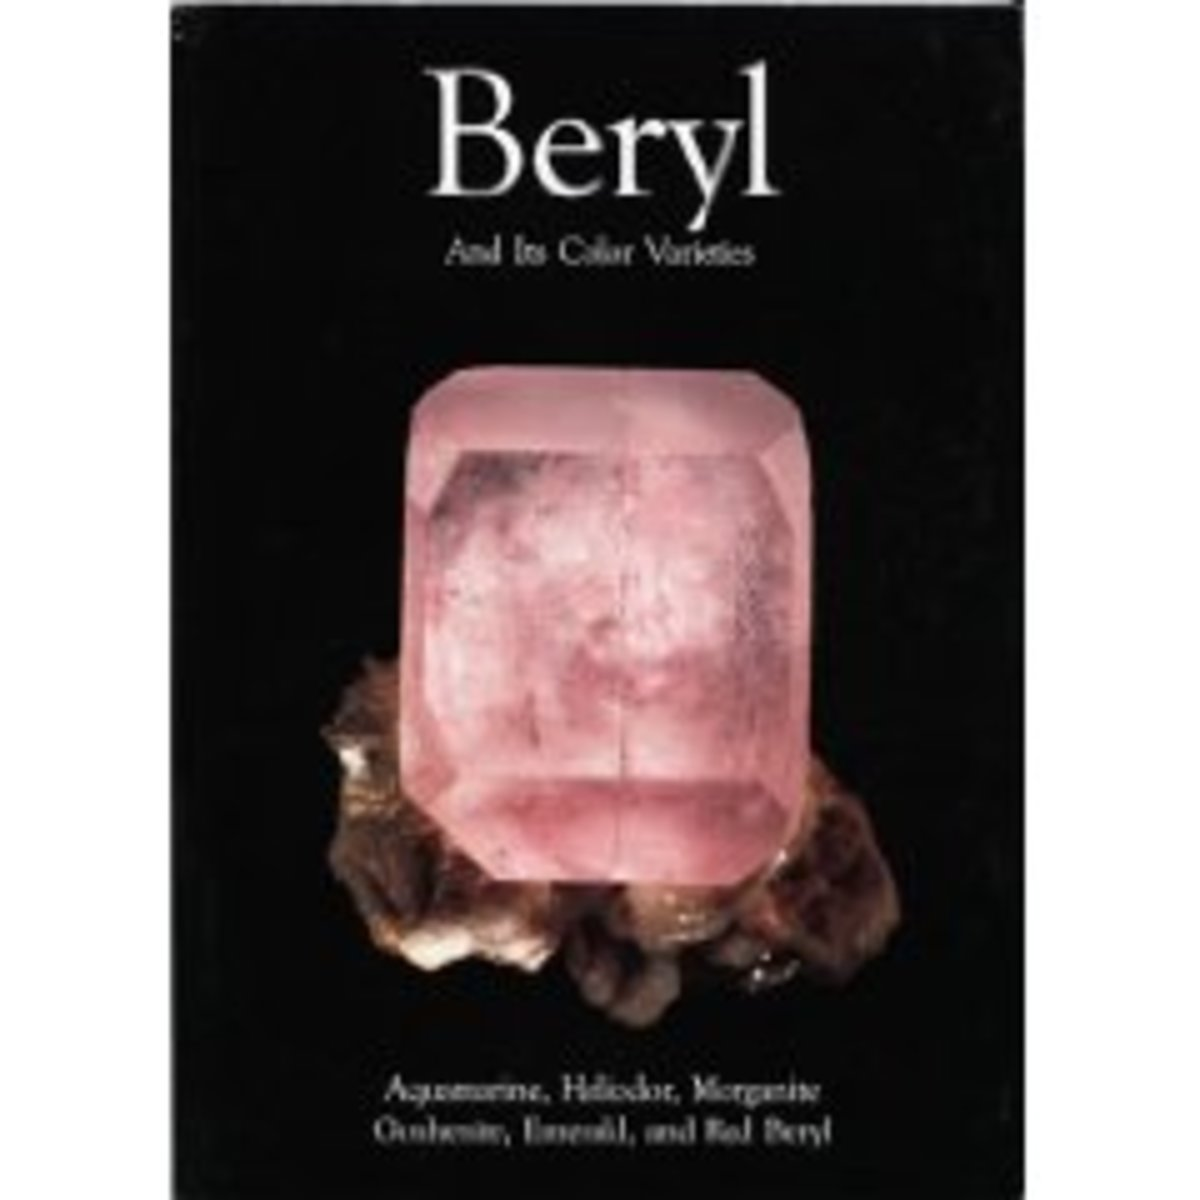 Beryl and Its Color Varieties: A reference book on the different types of Beryl Stones like Aquamarine, Heliodor, Morganite, Goshenite, Emerald and Red Beryl